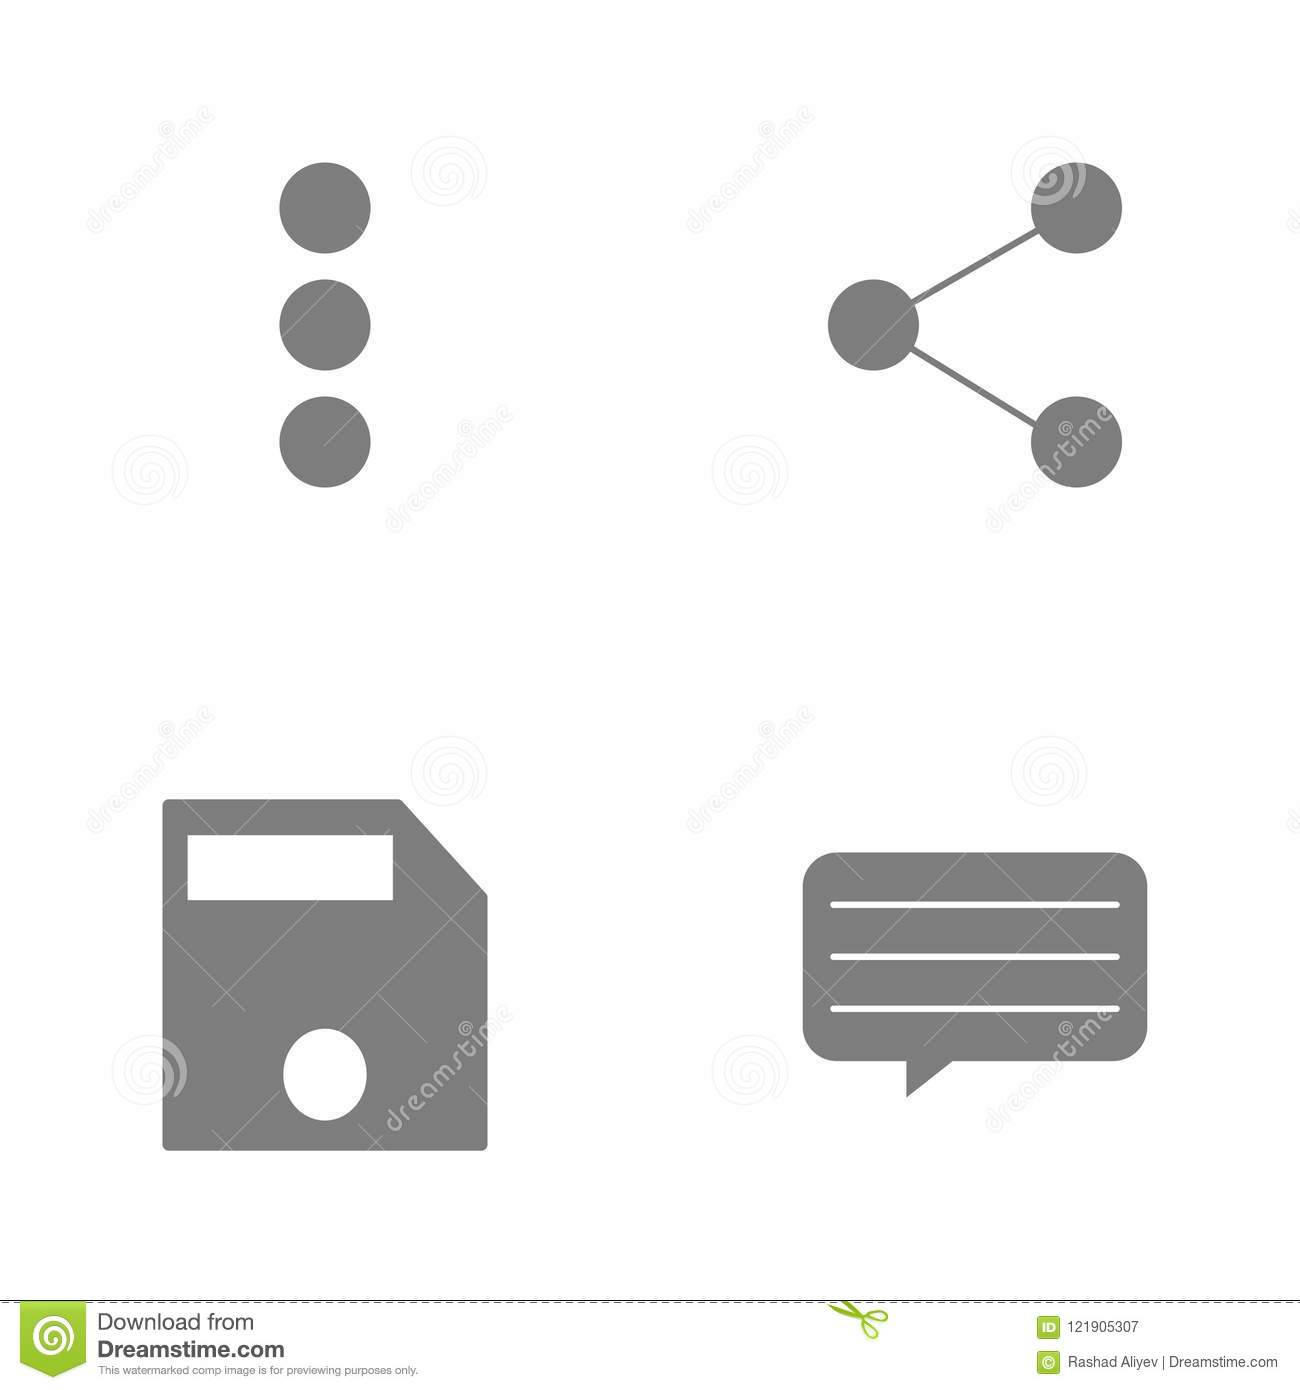 Vector illustration set web icons. Elements text message, file save, Shareand Triple dotsicon